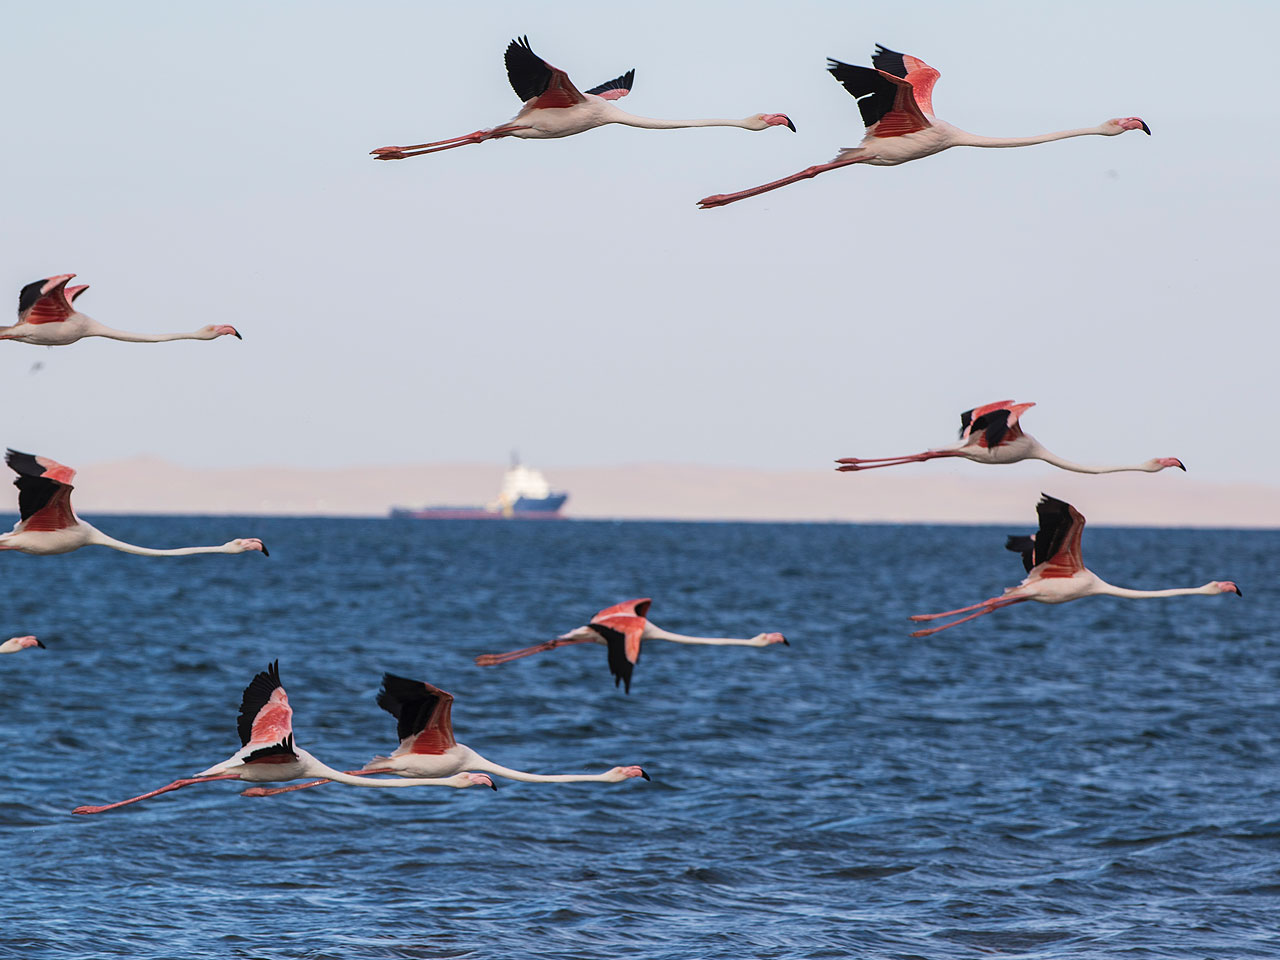 Flamingos flying over the ocean with a ship in the background.